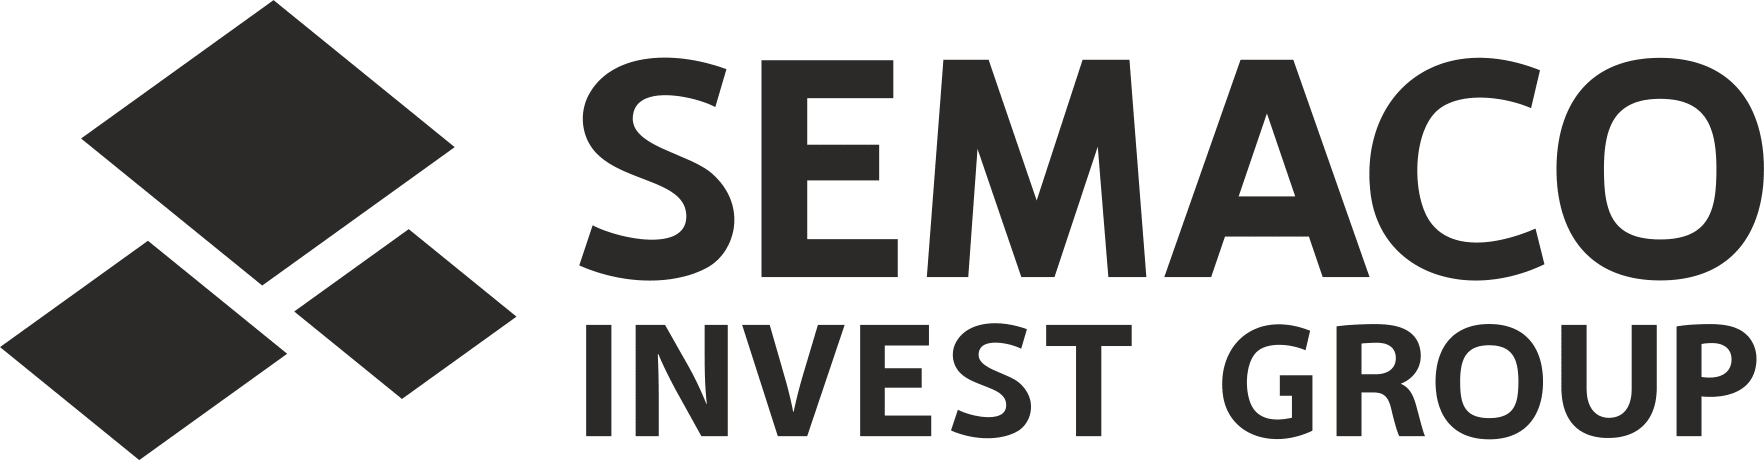 Semaco Invest Group logo